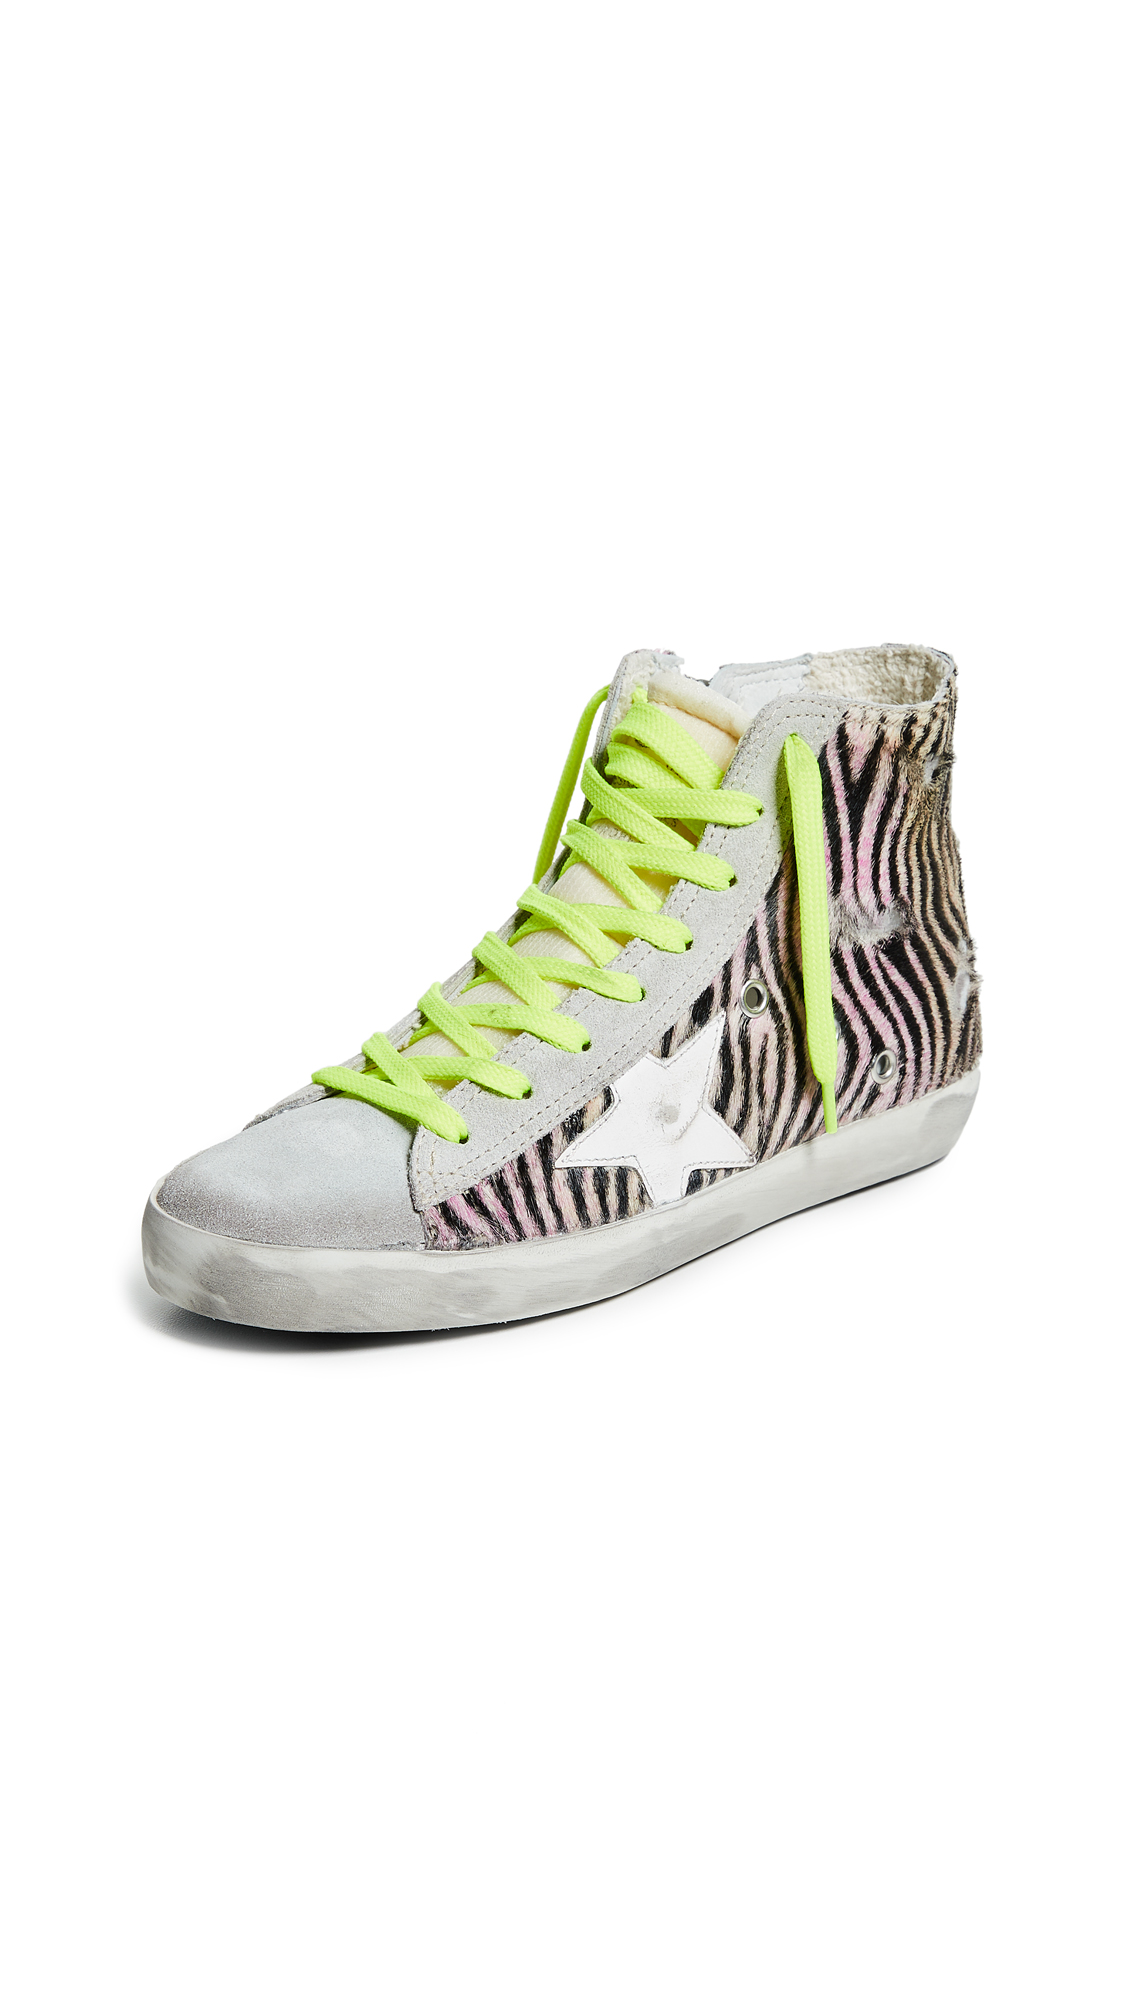 Golden Goose Francy Sneakers - Multicolor Zebra/White